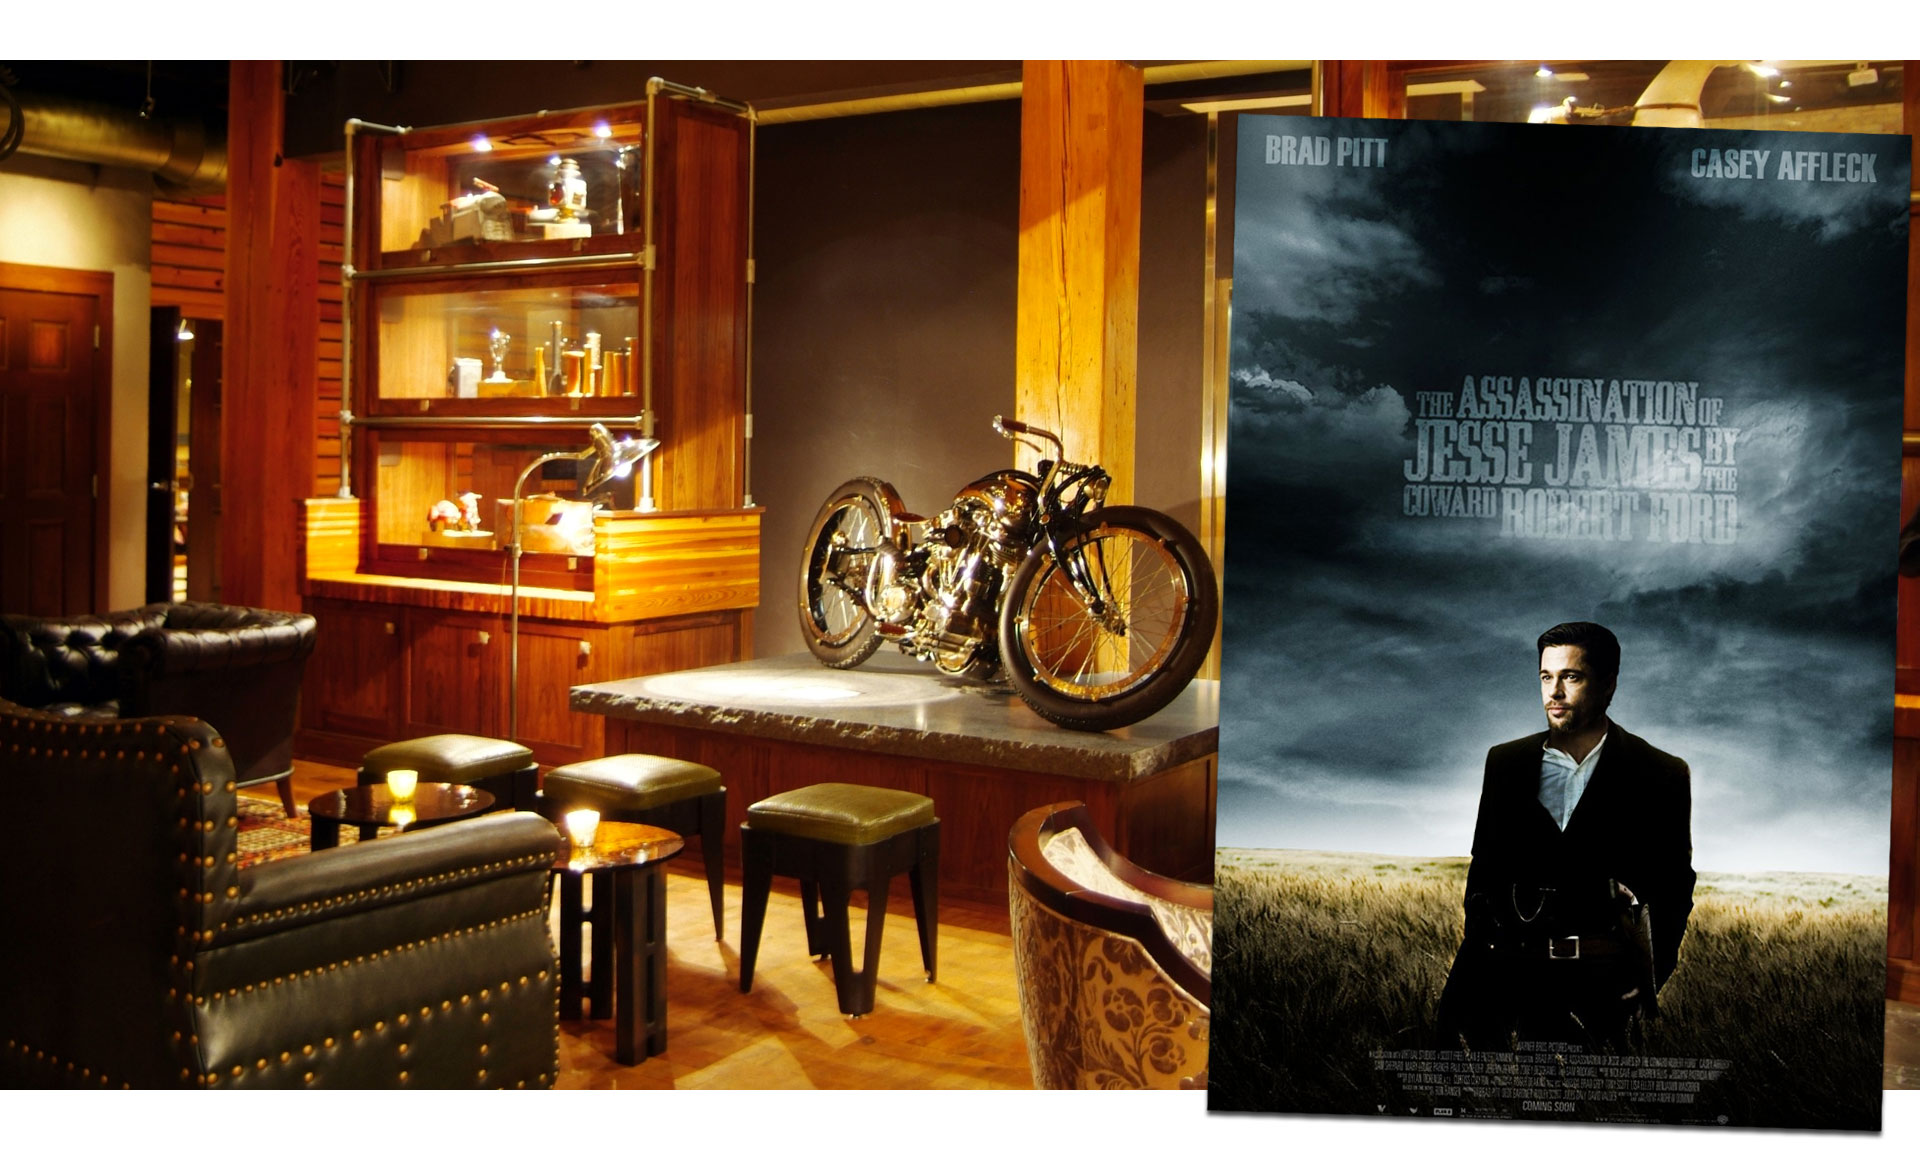 The Iron Horse Hotel - boutique hotel in Milwaukee, Wisconsin